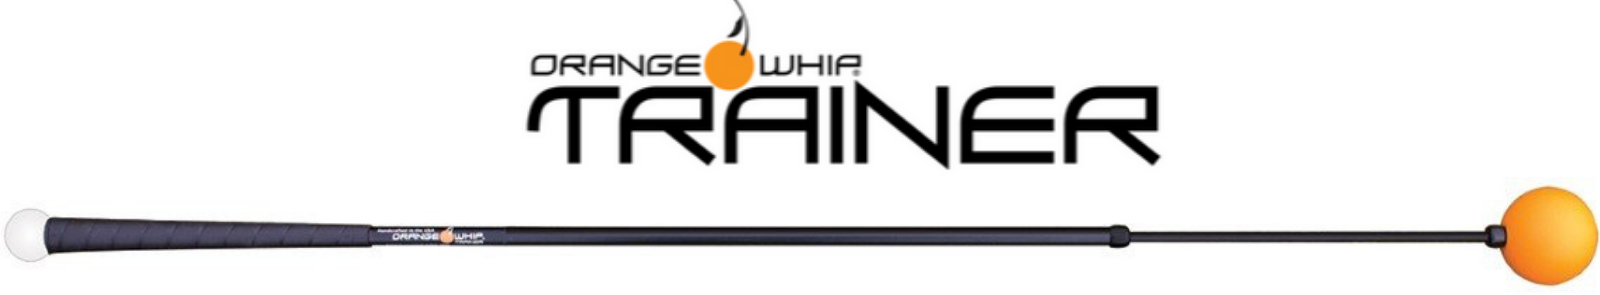 orange whip trainer golf training aid